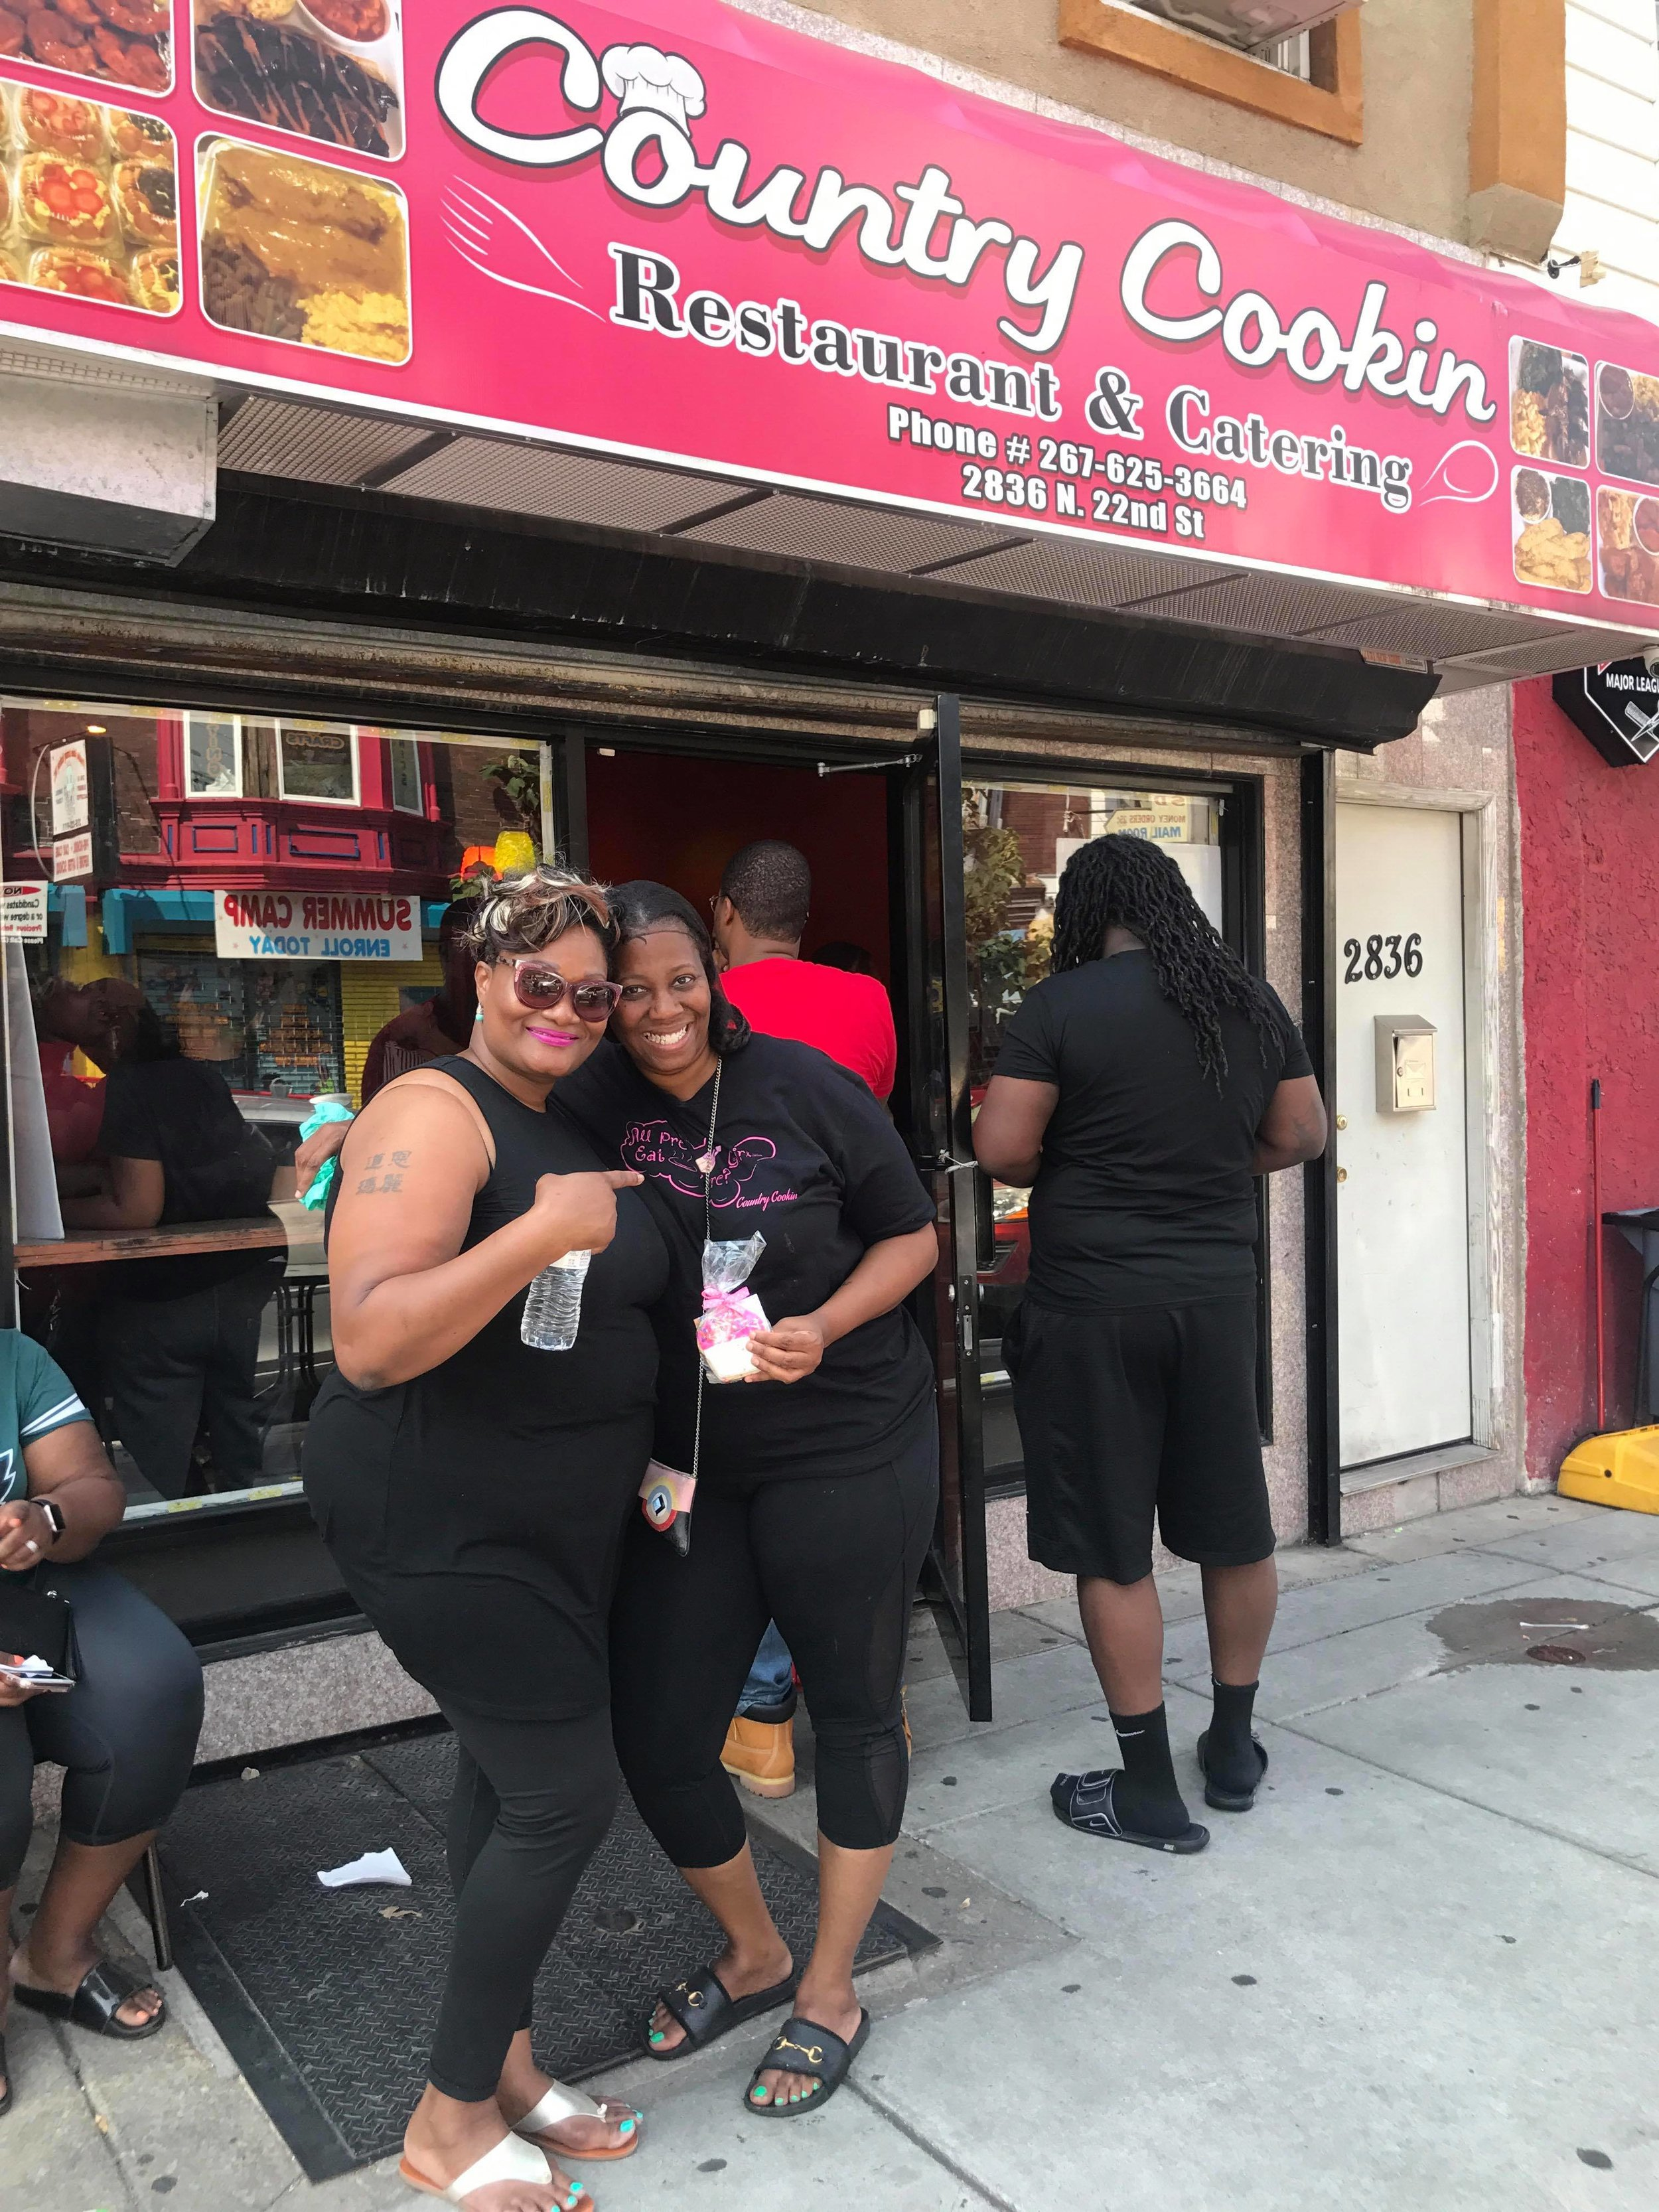 Chef Dawn visits Saud at Country Cookin in Philadelphia Pennsylvania. - Saud and her team loved their Speciality Ravy Cakes Sugar Cookies!